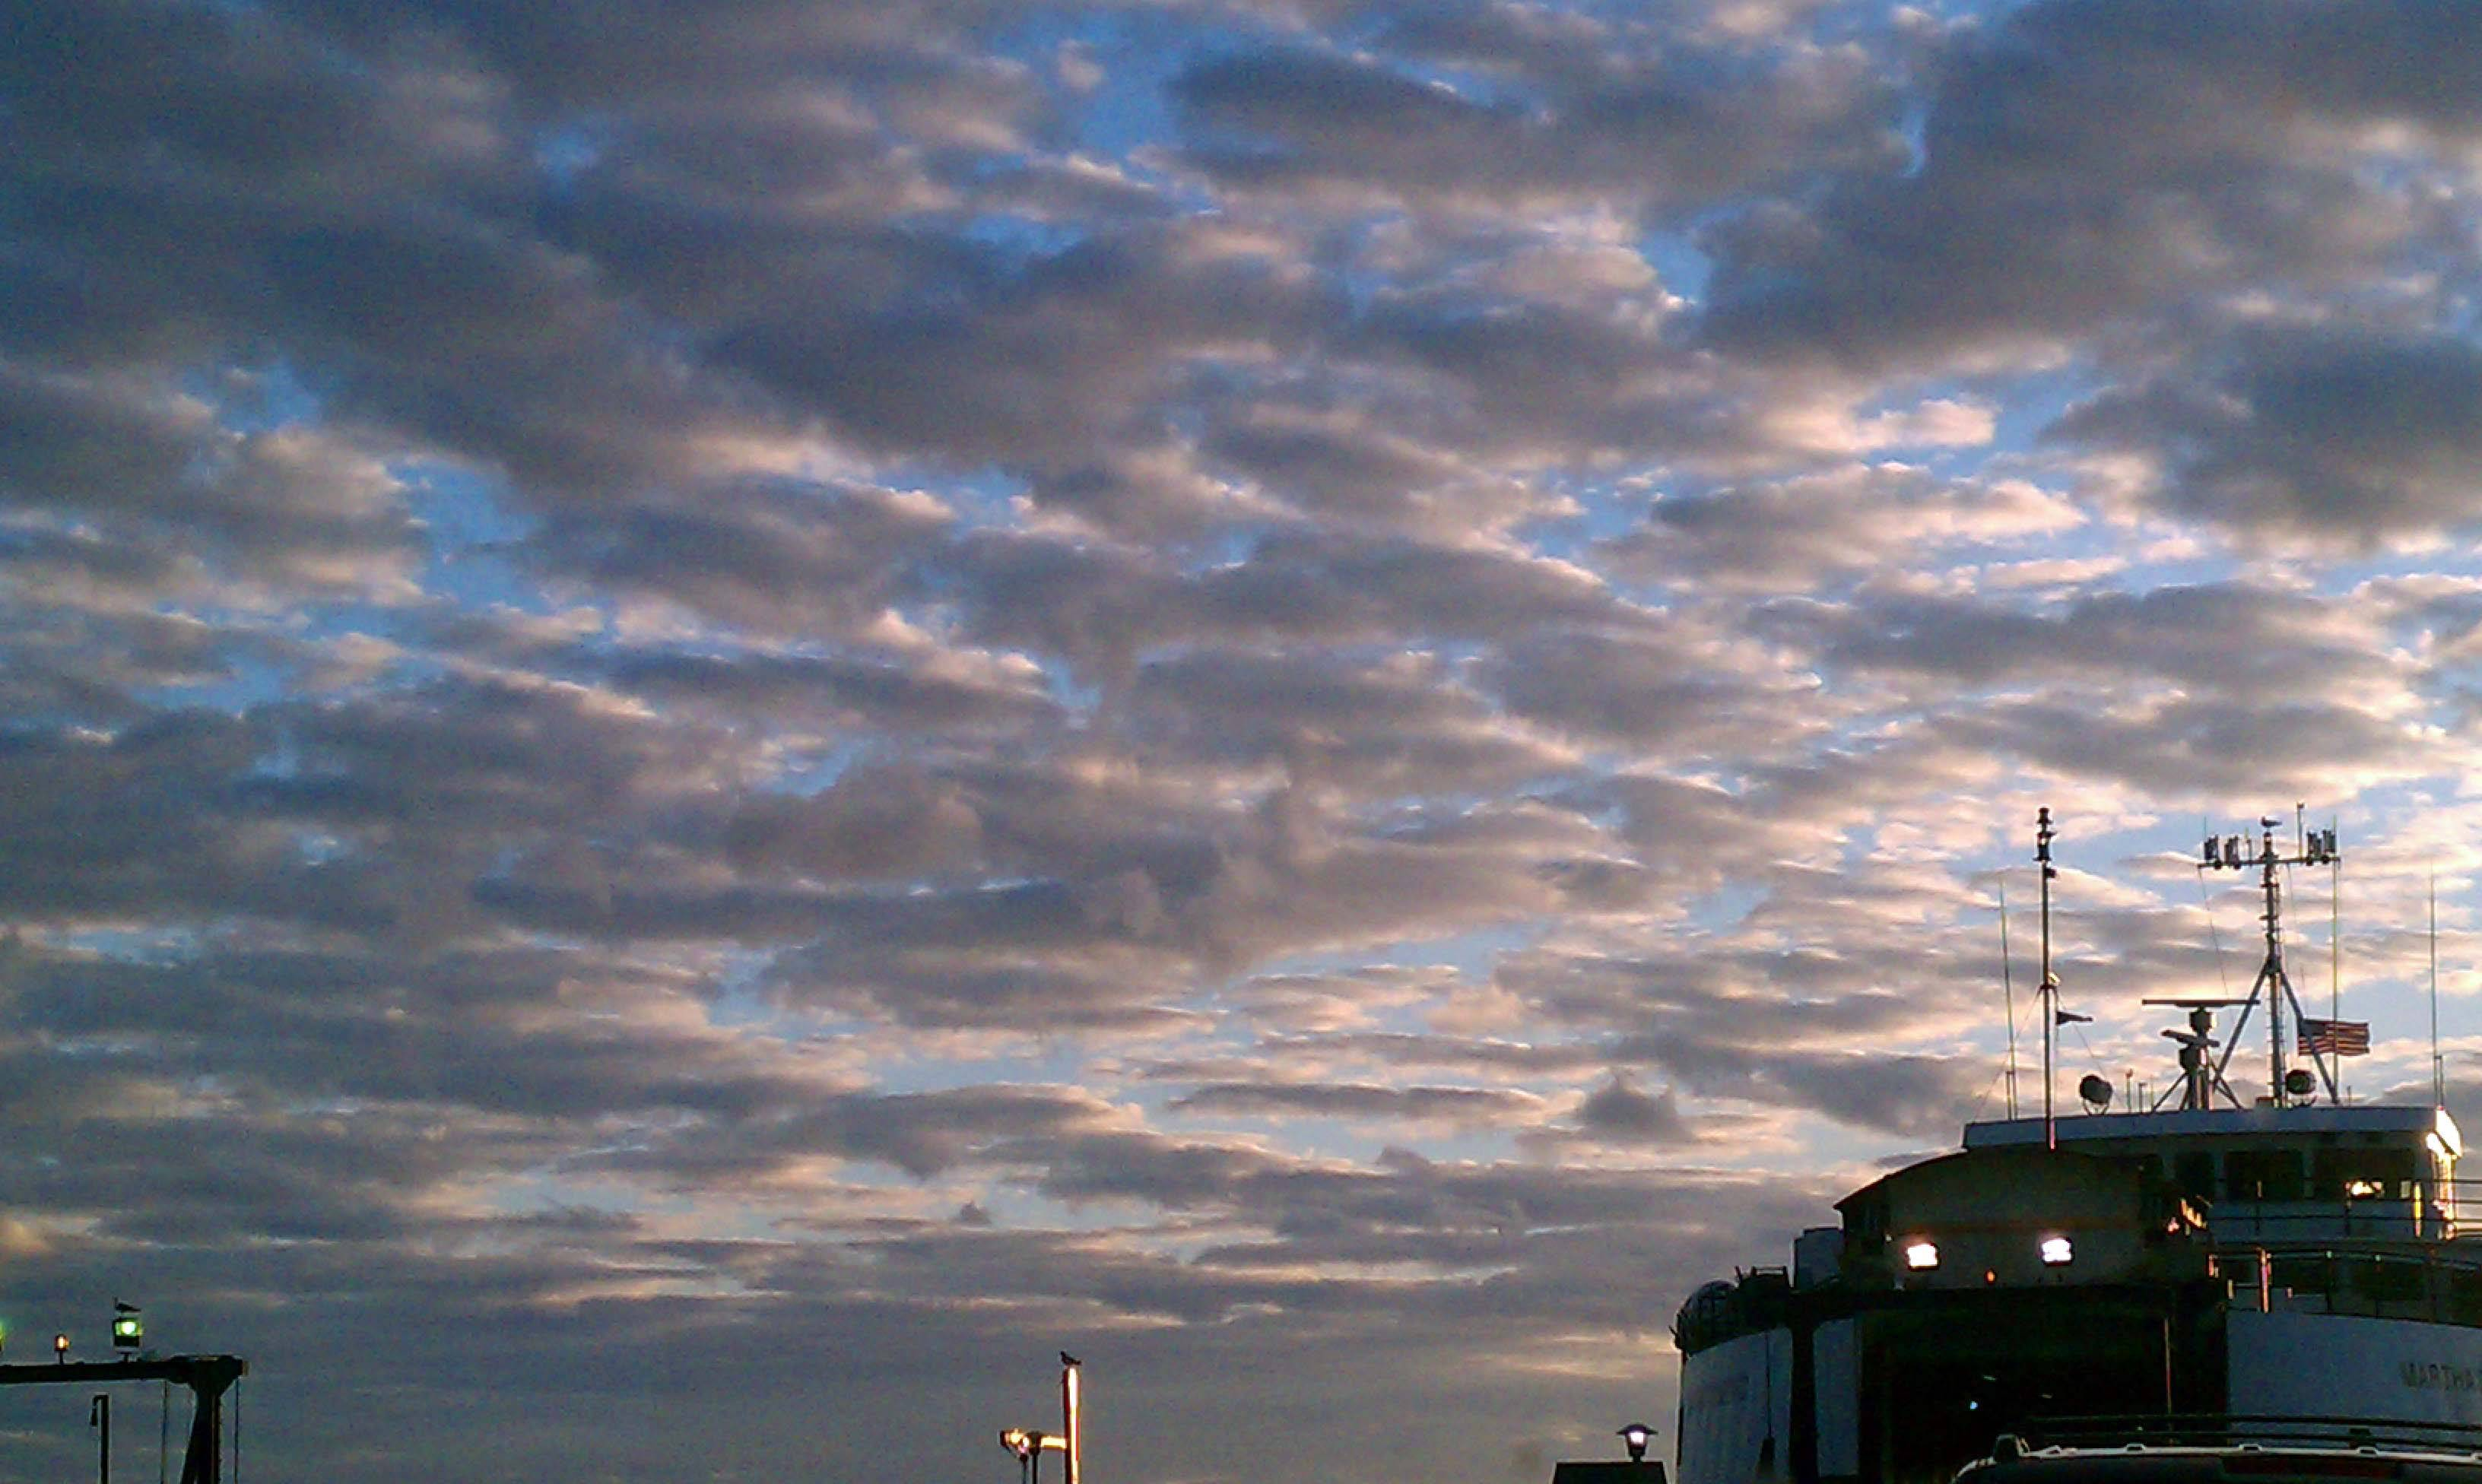 The evening sky at Woods Hole SSA terminal